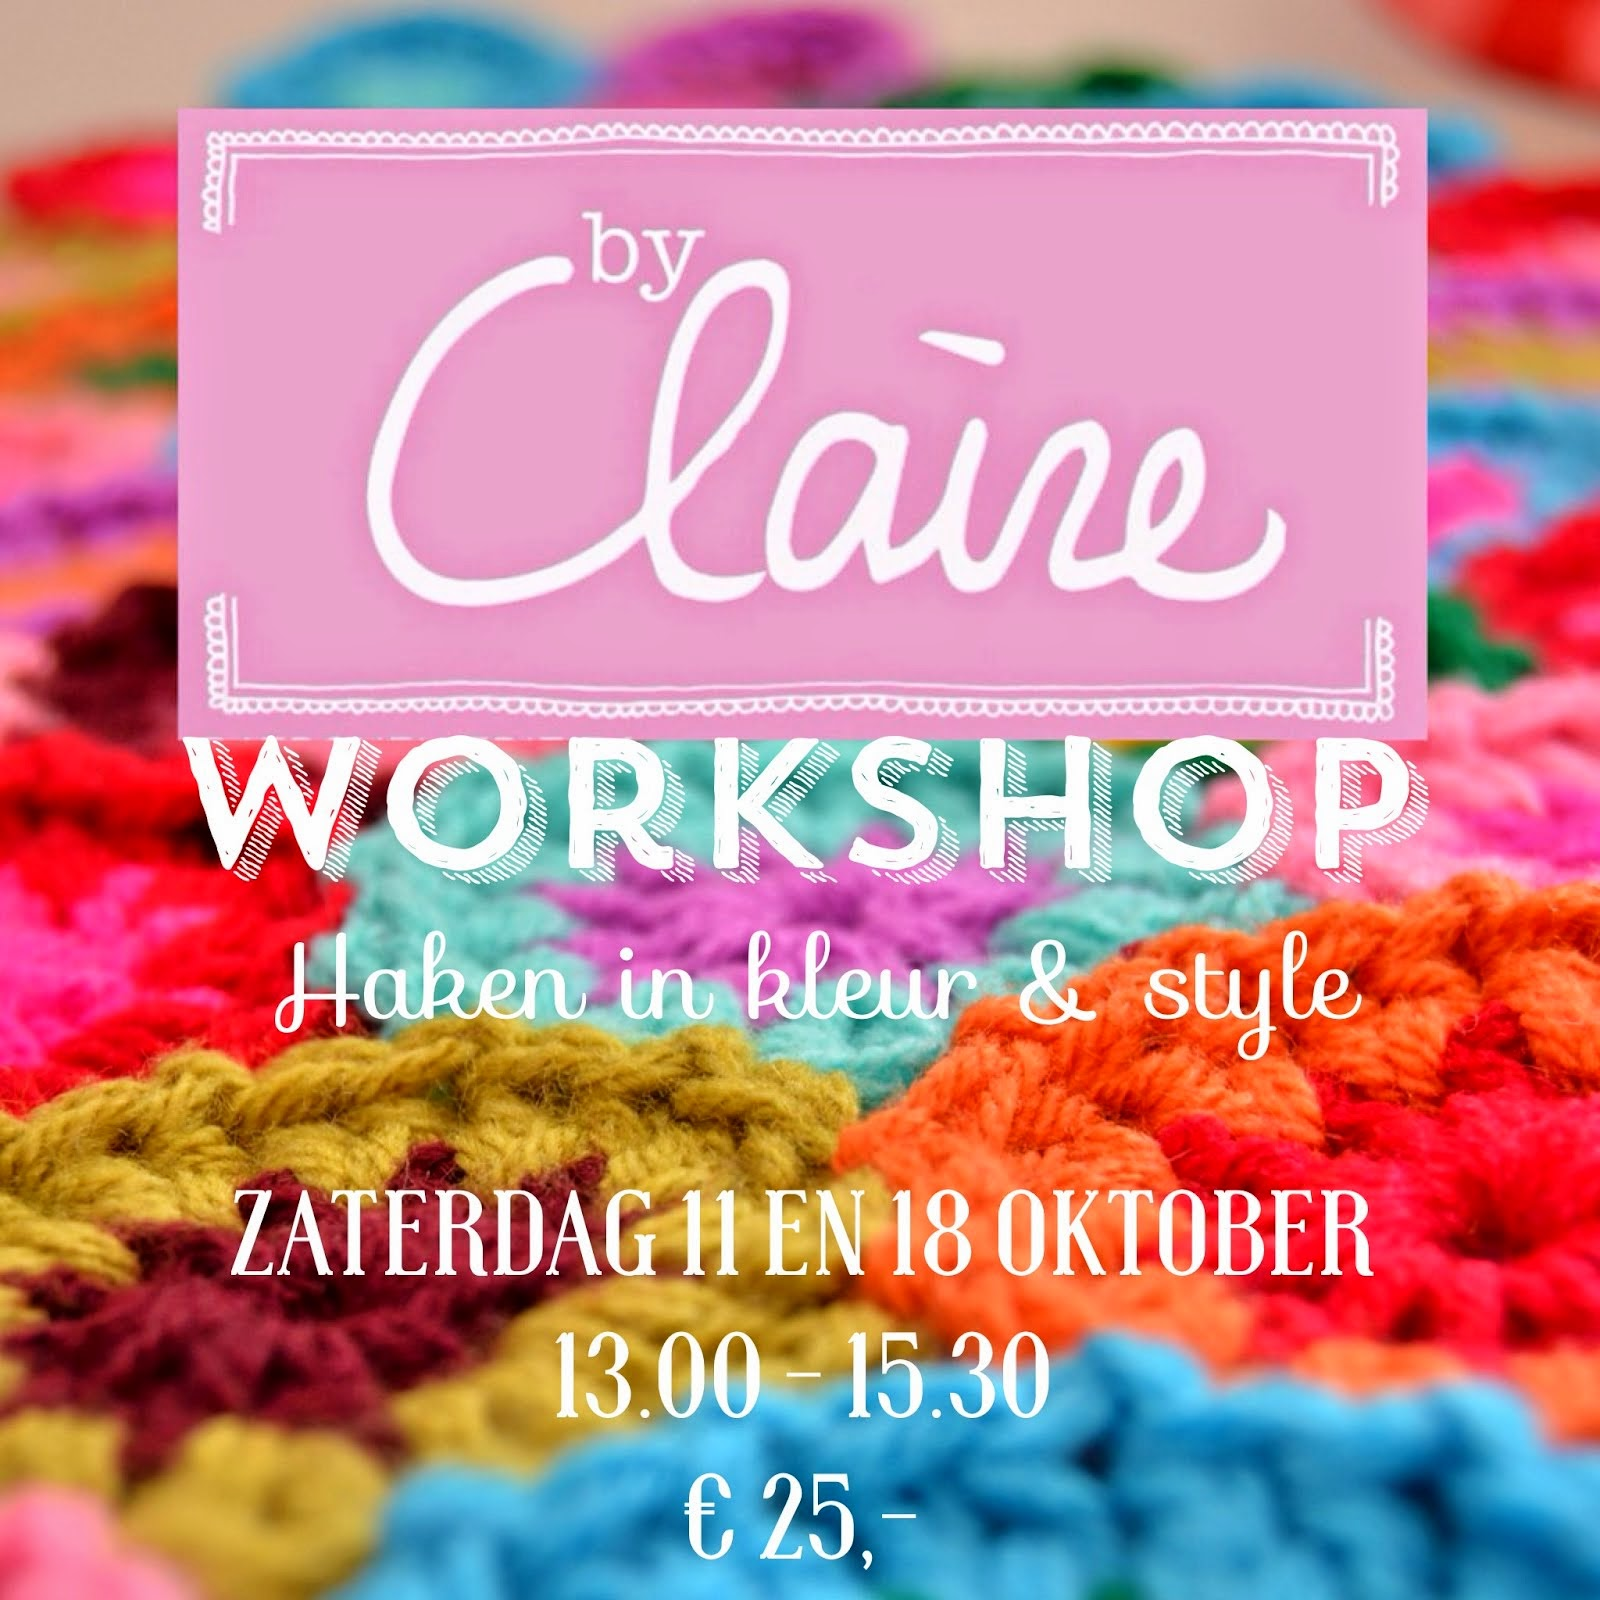 WORKSHOP byClaire, world of colors